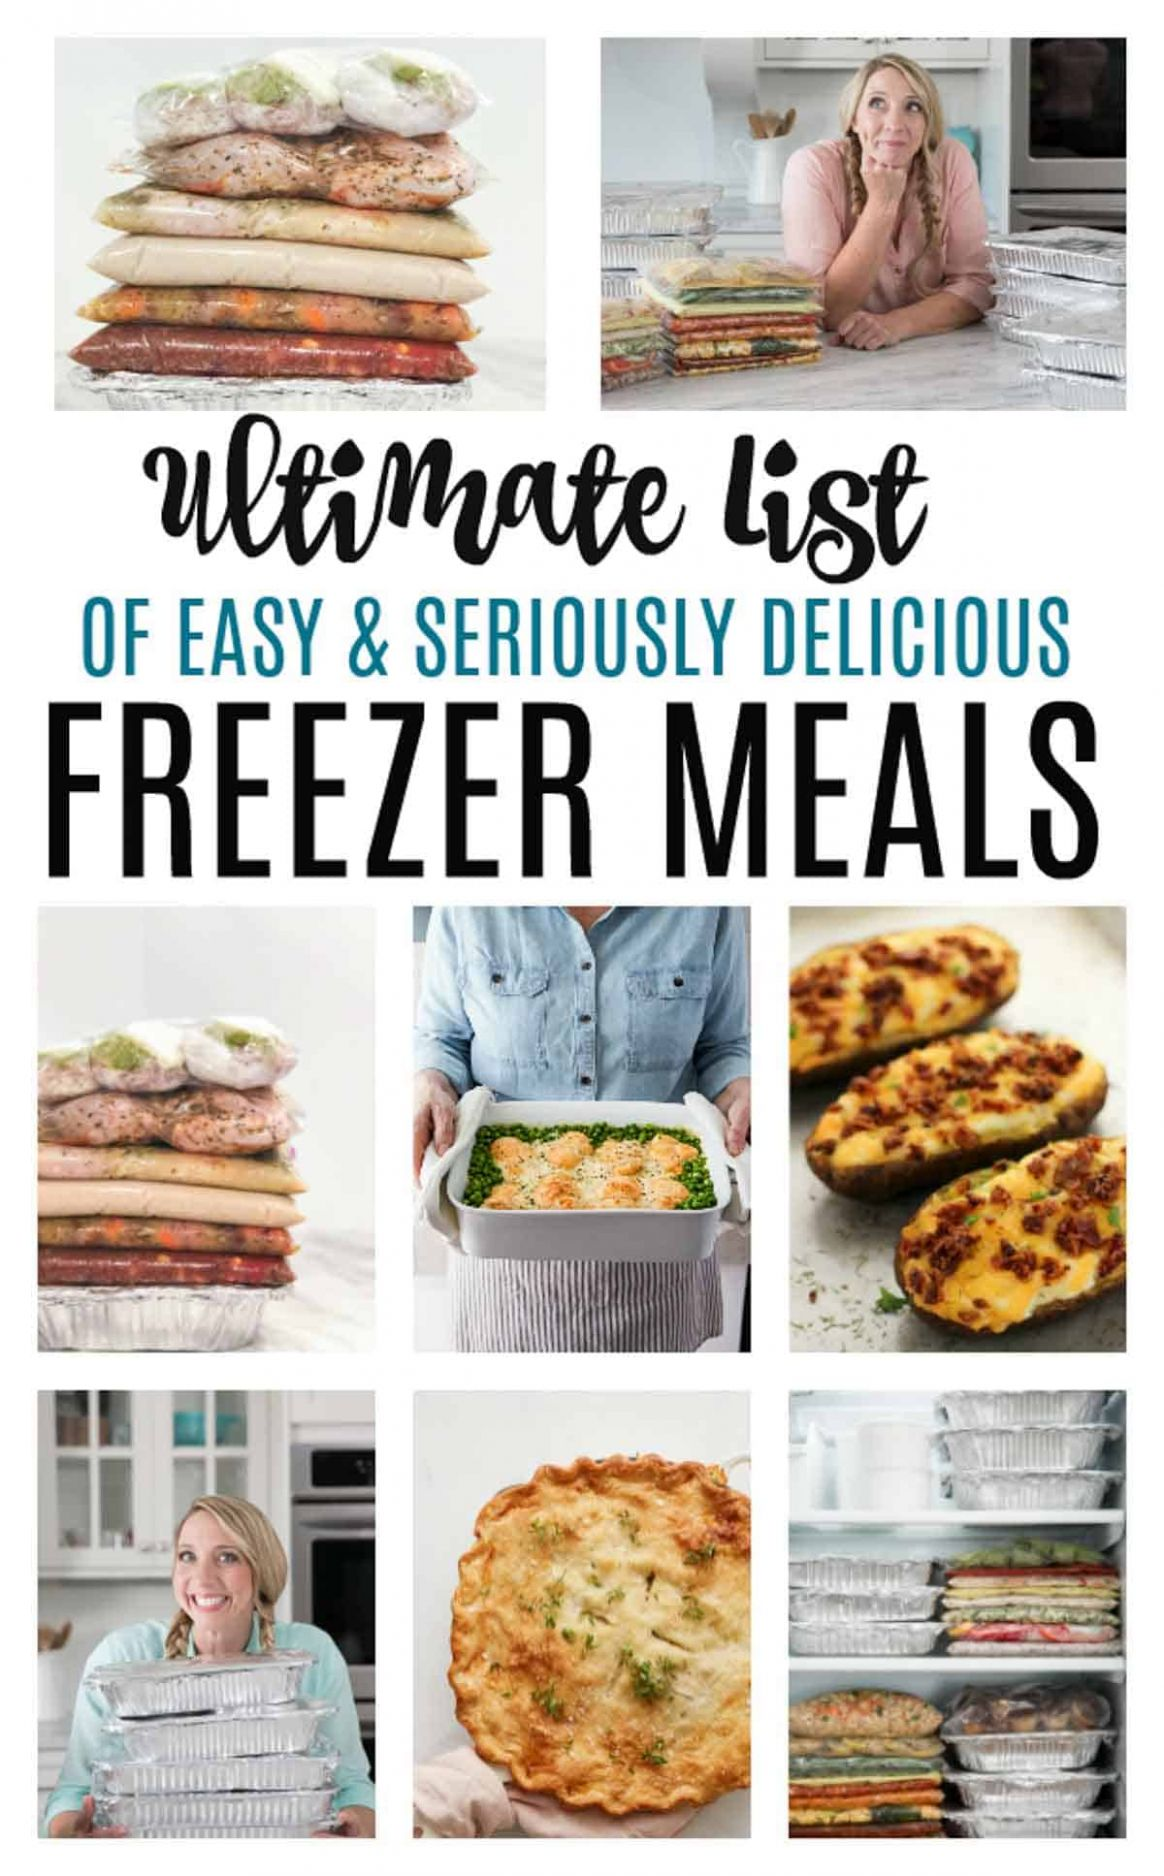 Make Ahead Freezer Meals for a month - Healthy Recipes To Freeze